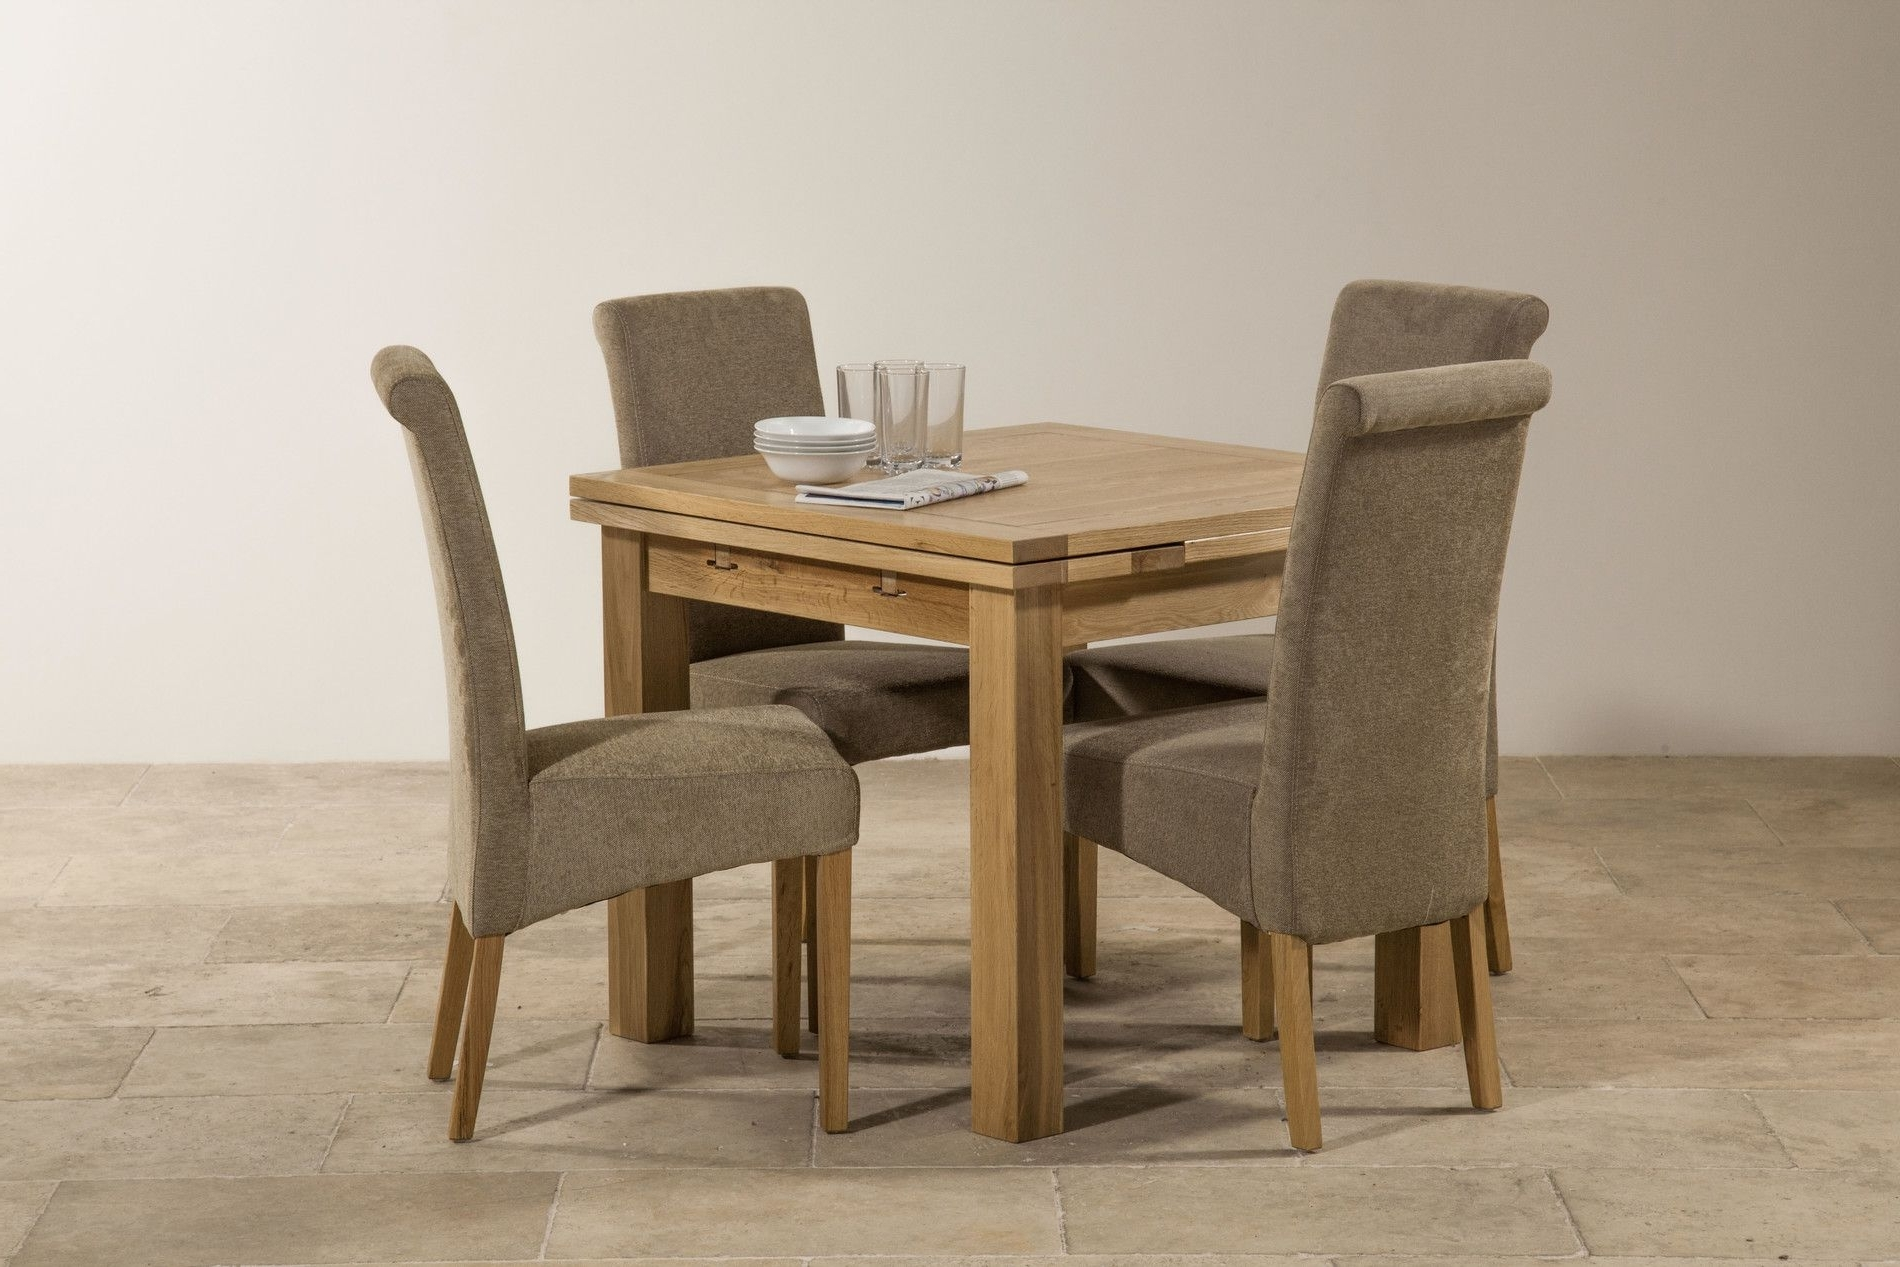 Dorset 3Ft X 3Ft Solid Oak Extending Dining Set With 4 Sage Fabric Regarding Most Current Dining Tables And Fabric Chairs (Gallery 21 of 25)